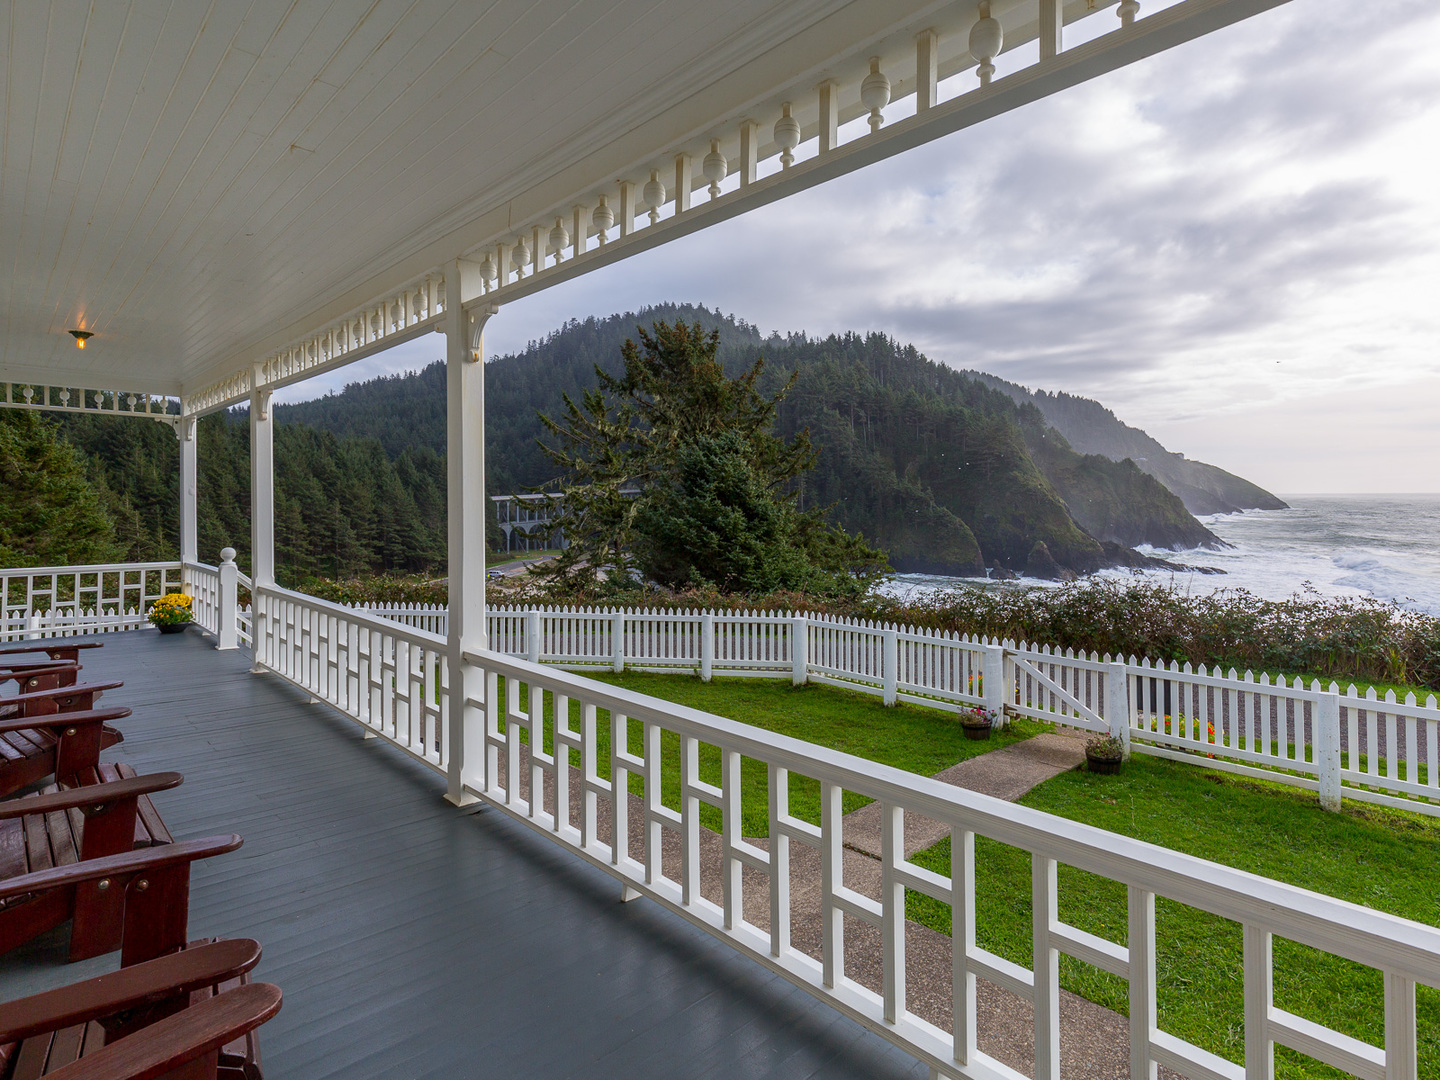 A row of wooden benches sitting on top of a metal fence at Heceta Lighthouse B&B.